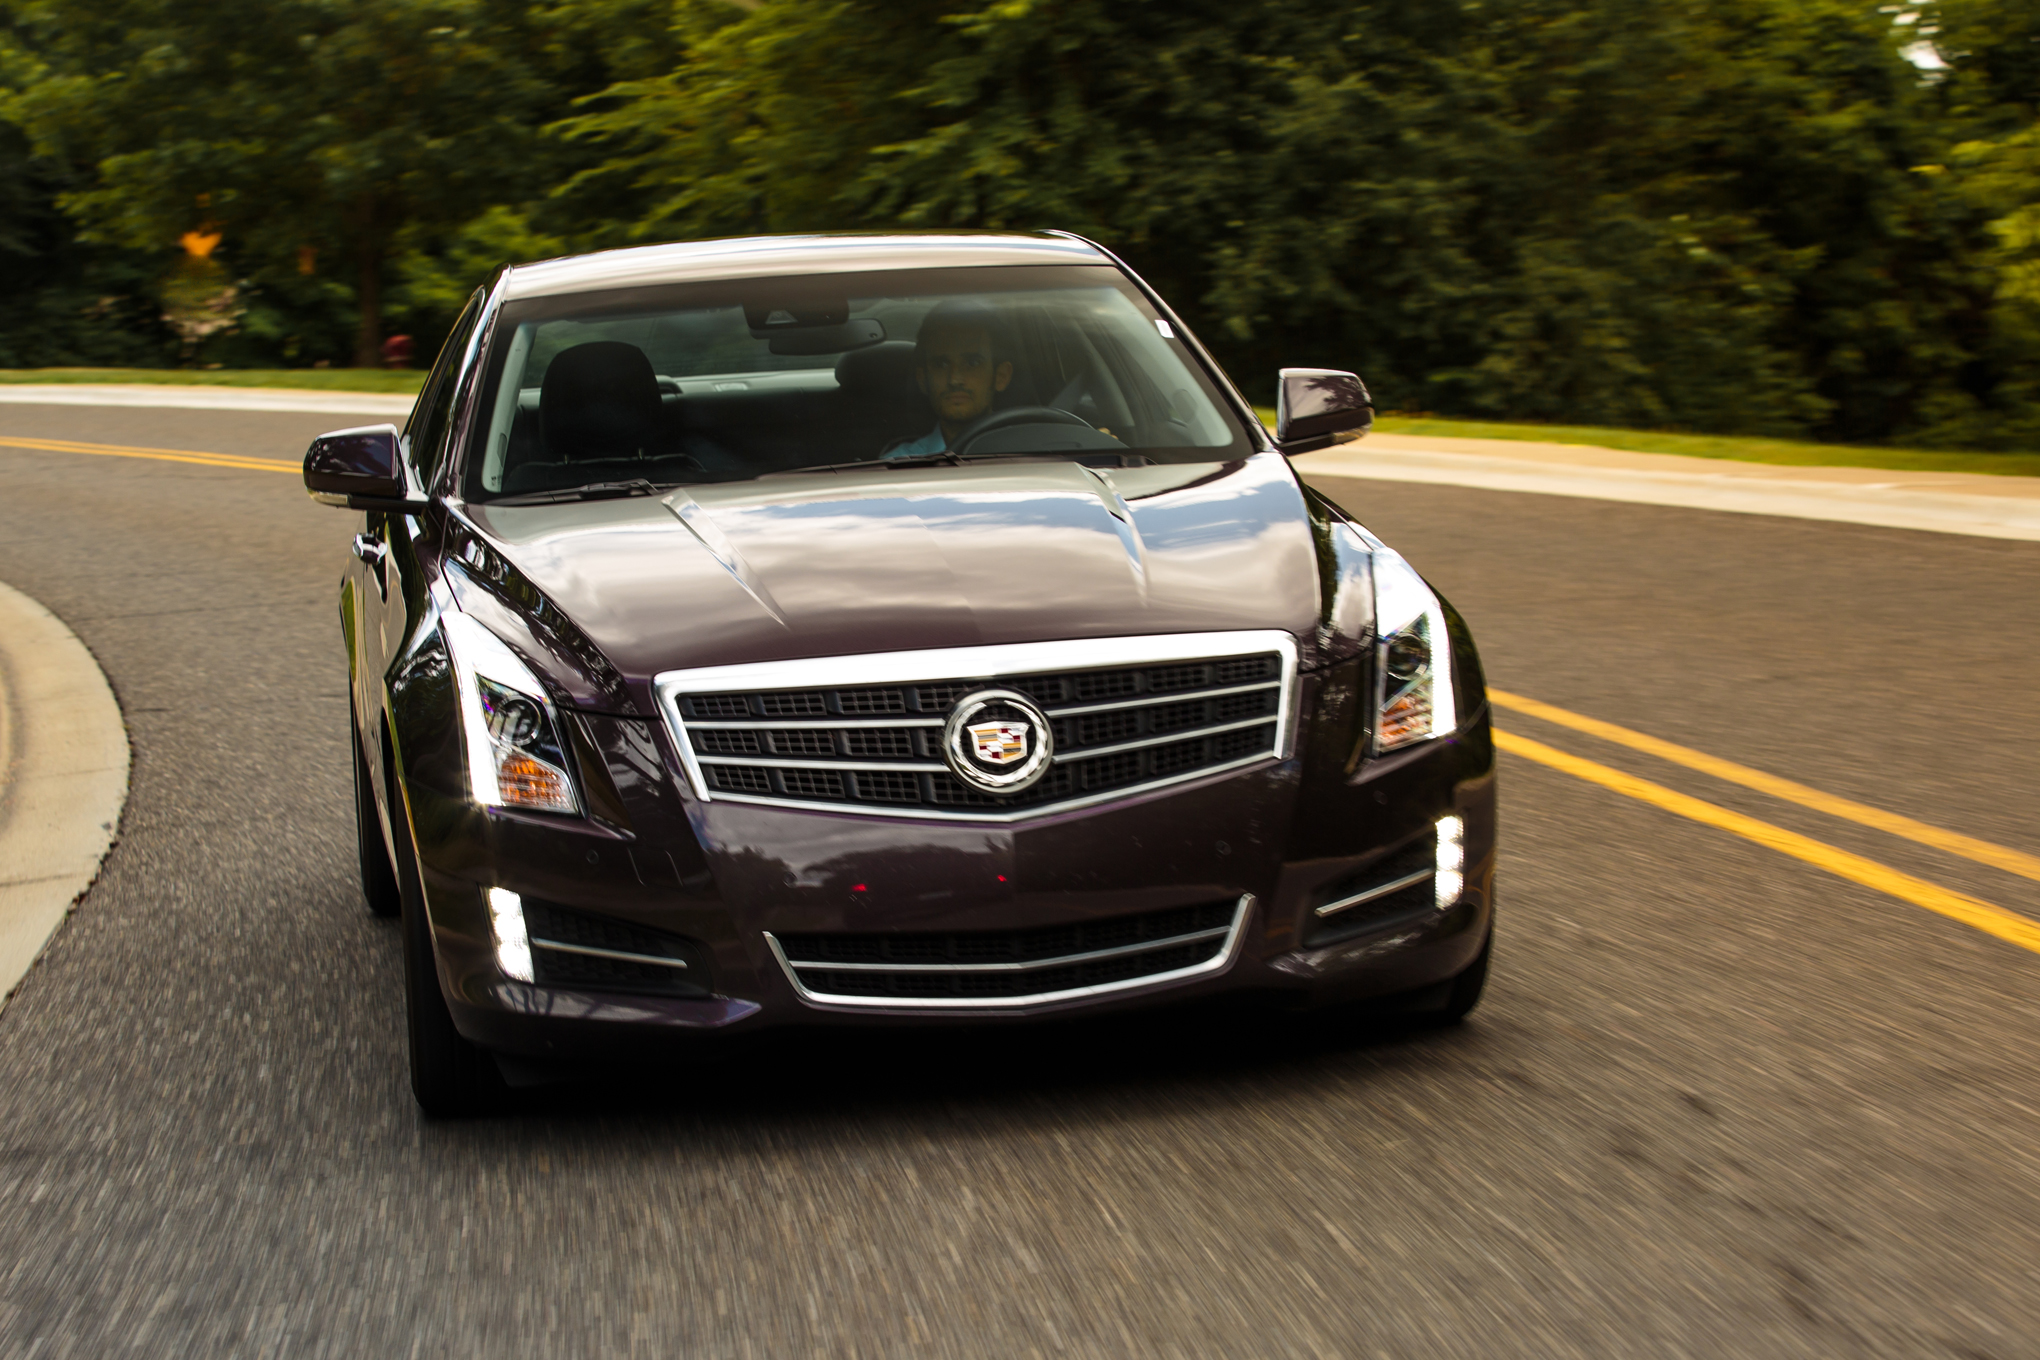 2014 Cadillac ATS 2 0T Long-Term Verdict - Motor Trend